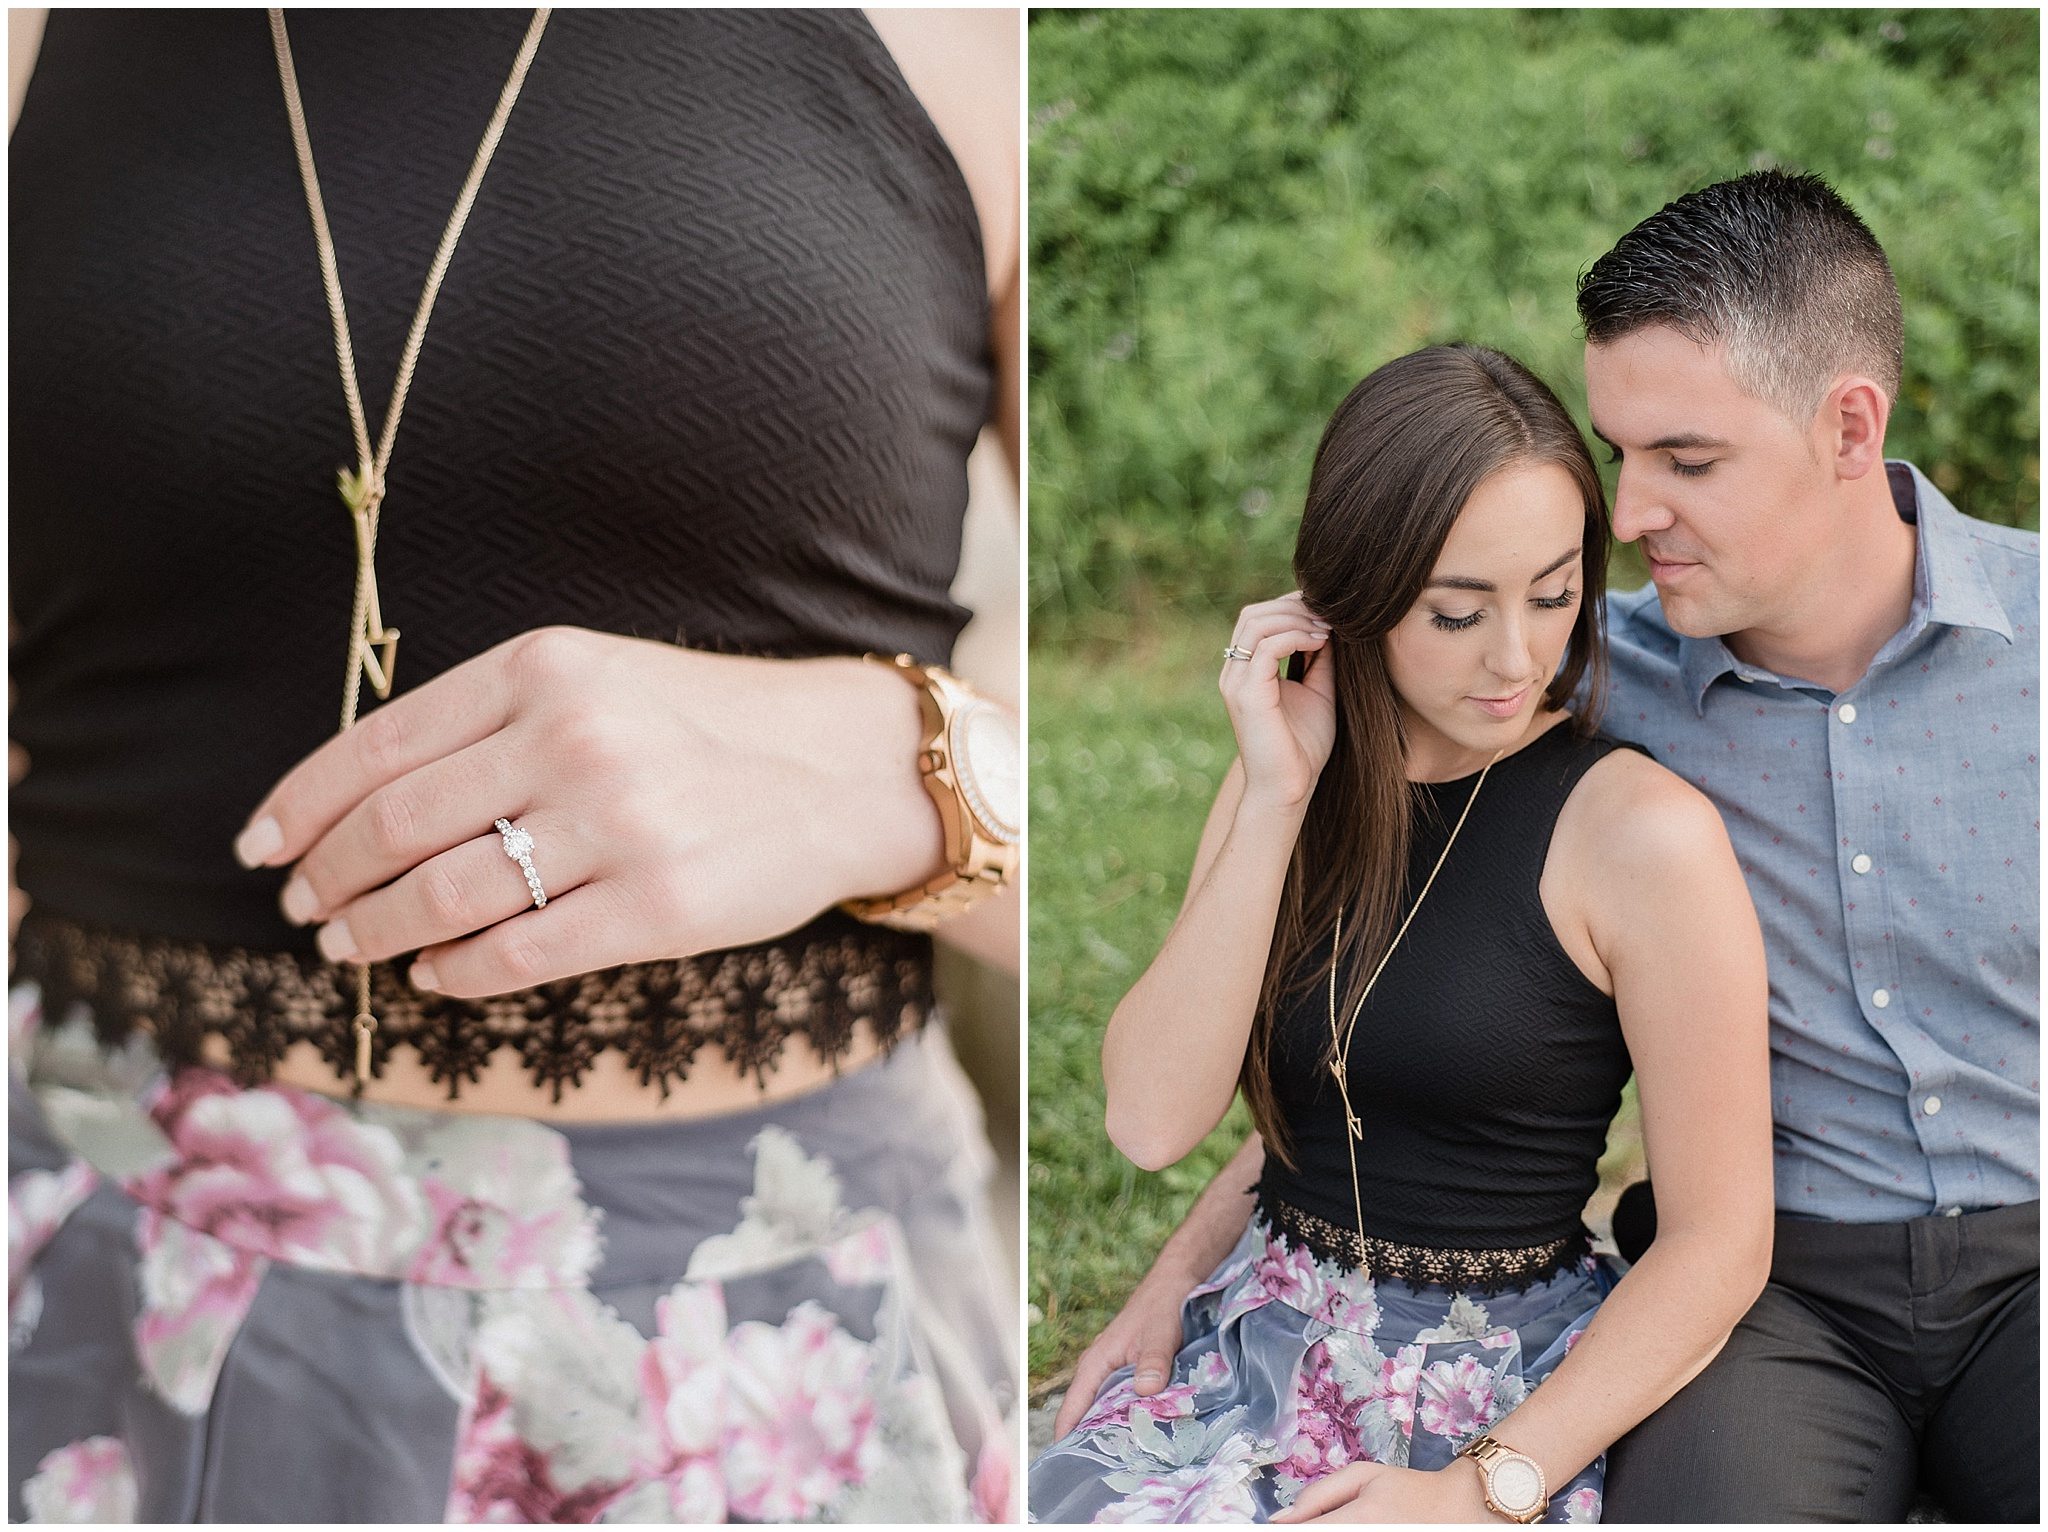 Hearts and Arrows Niagara on the Lake engagement session by Jenn Kavanagh Photography